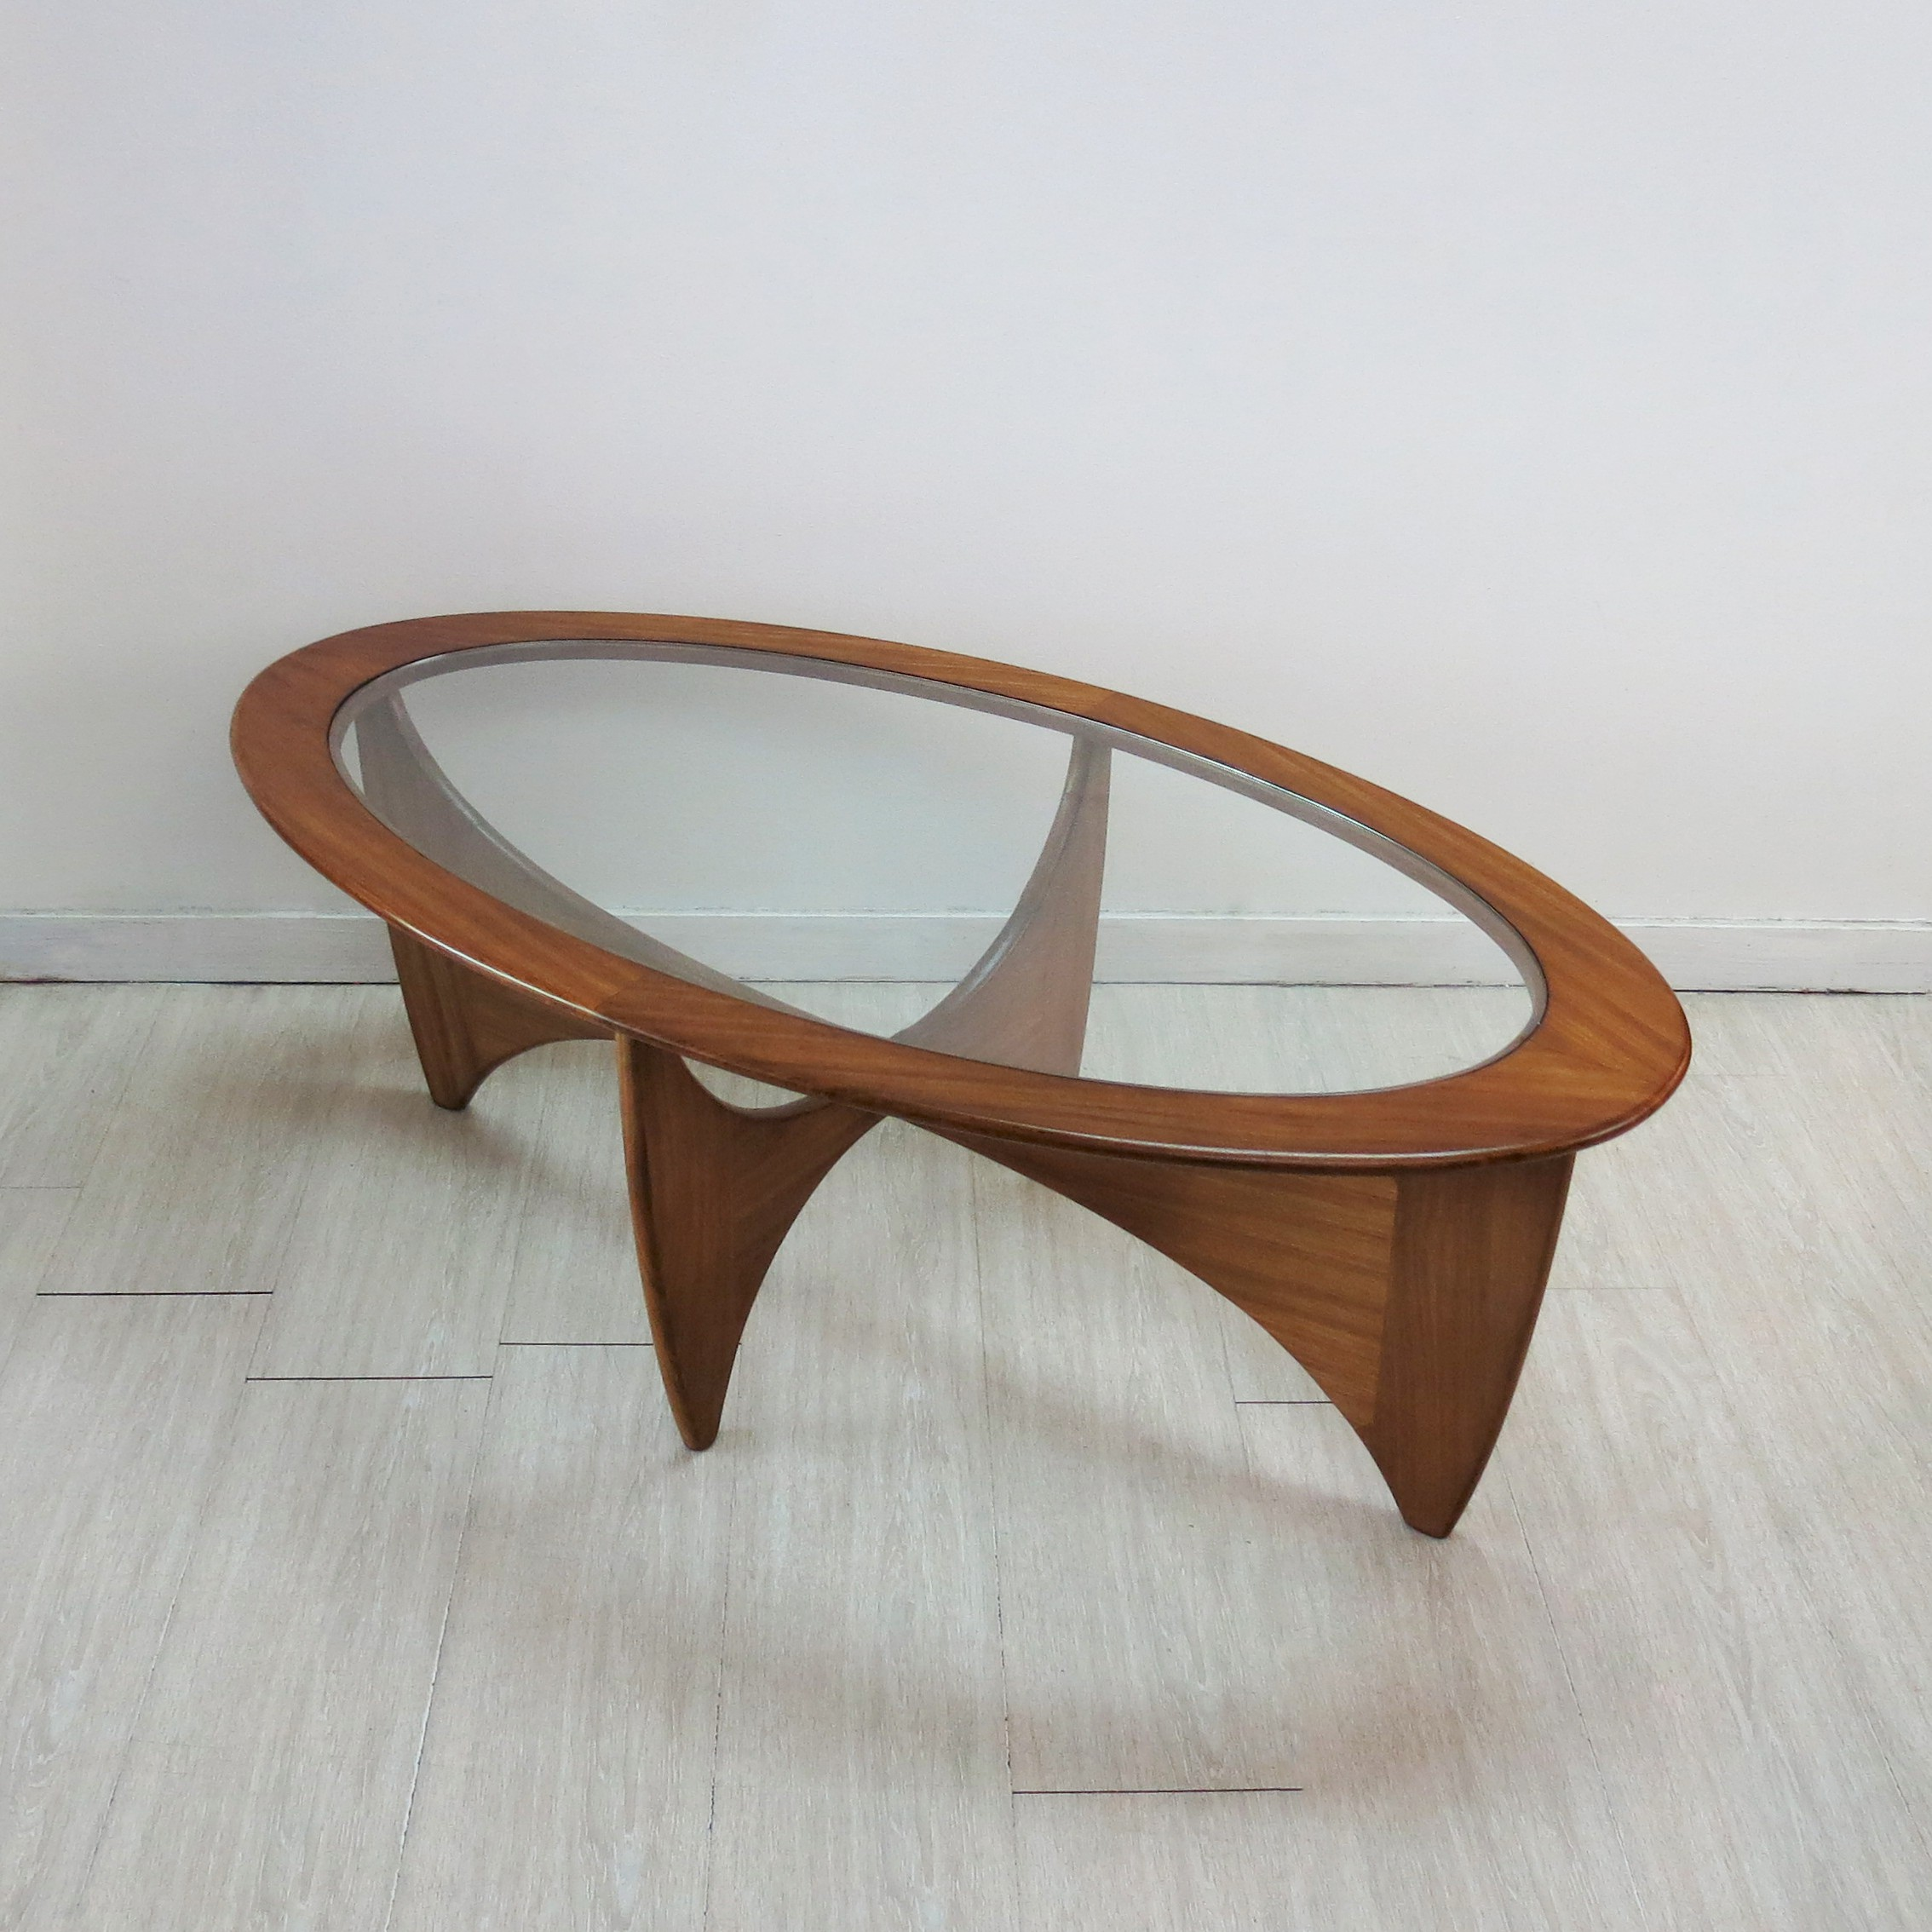 G plan astro oval coffee table in teak and glass victor wilkins g plan astro oval coffee table in teak and glass victor wilkins previous next geotapseo Choice Image